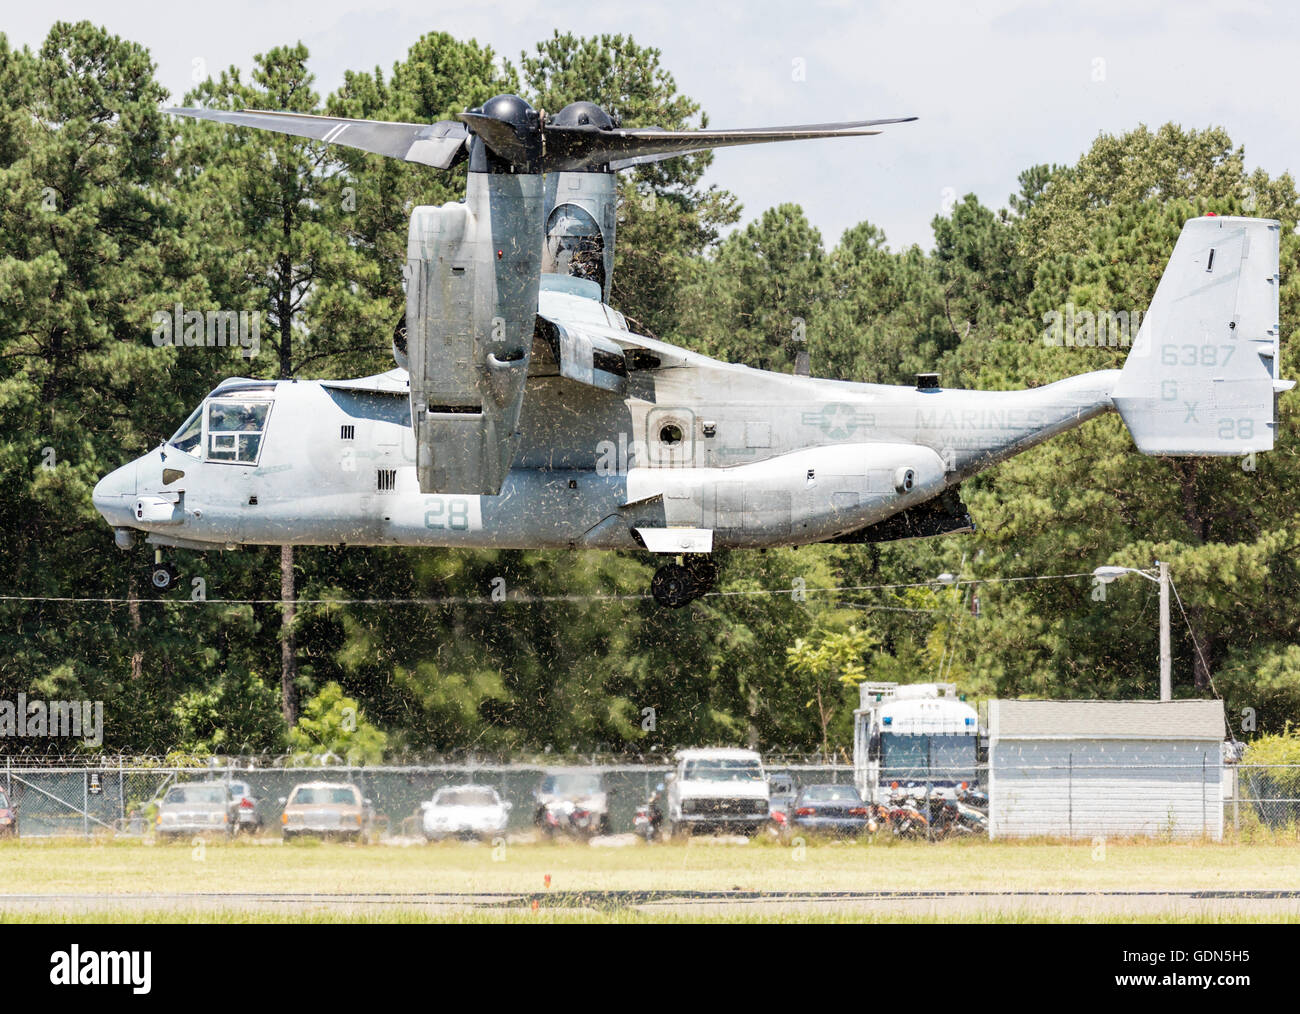 V-22 Osprey V/STOL aircraft taking off at Horace Williams Airport, Chapel Hill, NC USA - Stock Image